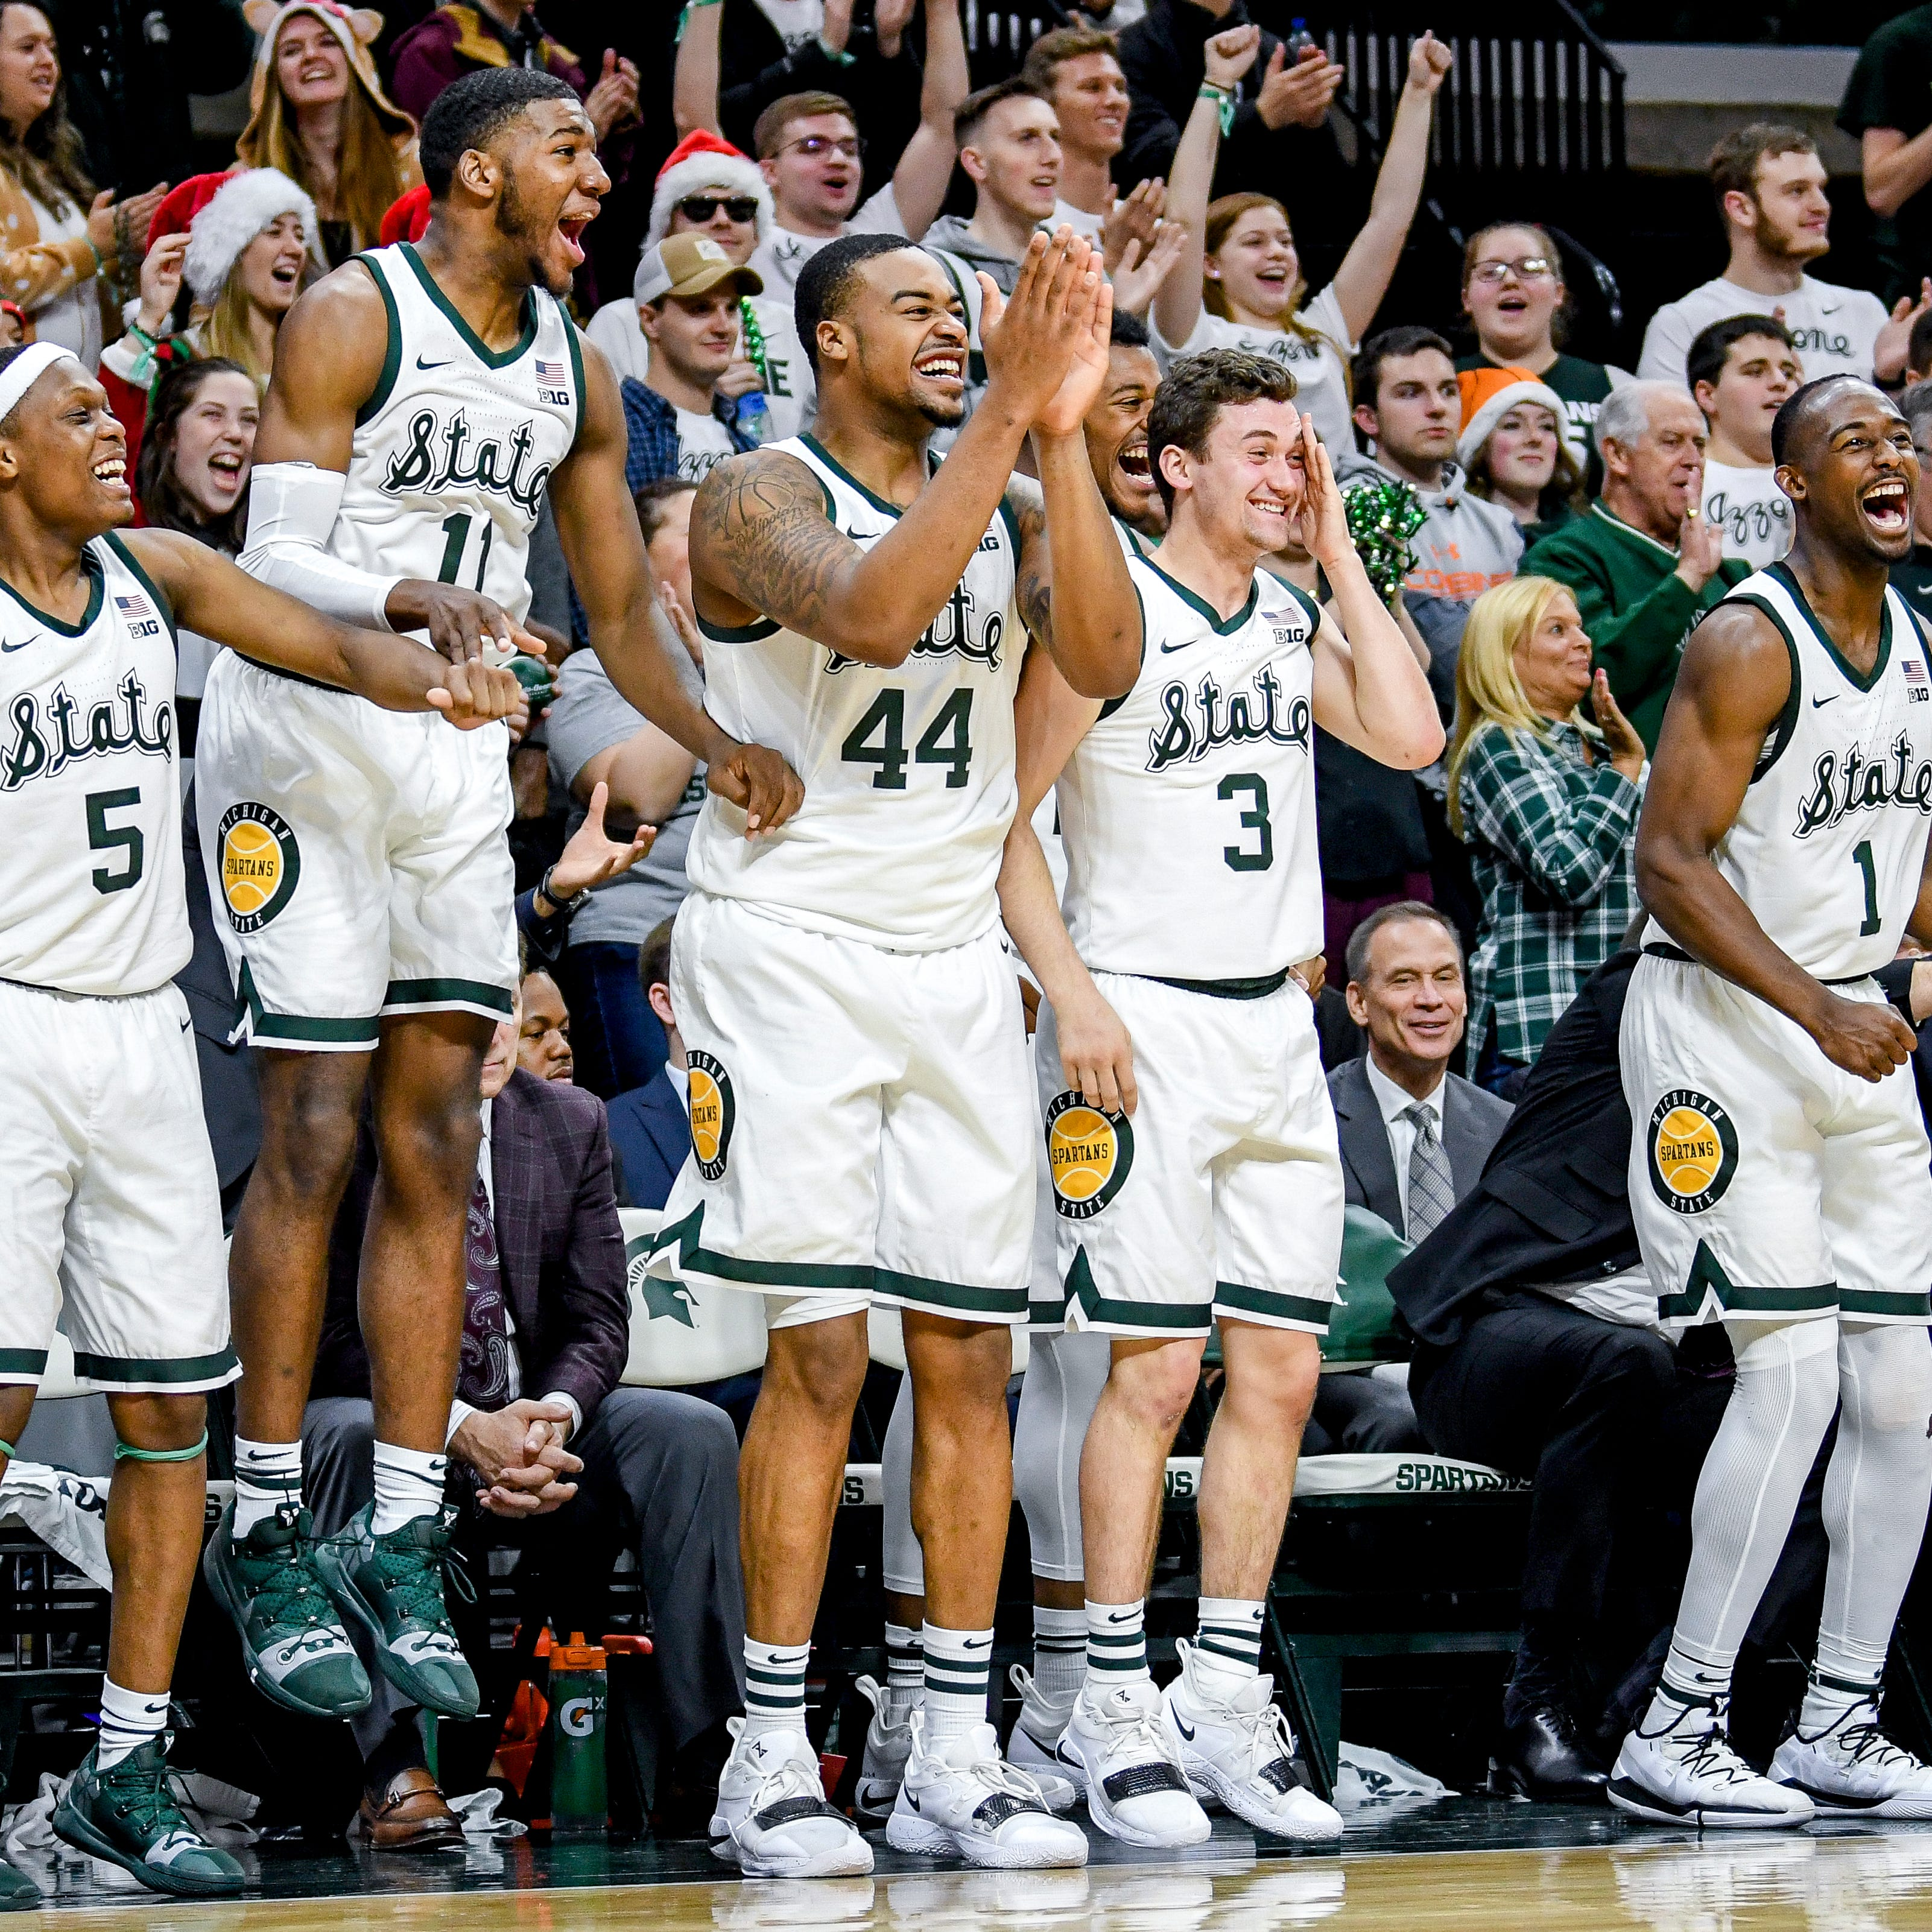 Michigan State vs. Florida men's basketball: How to watch on TV, stream online